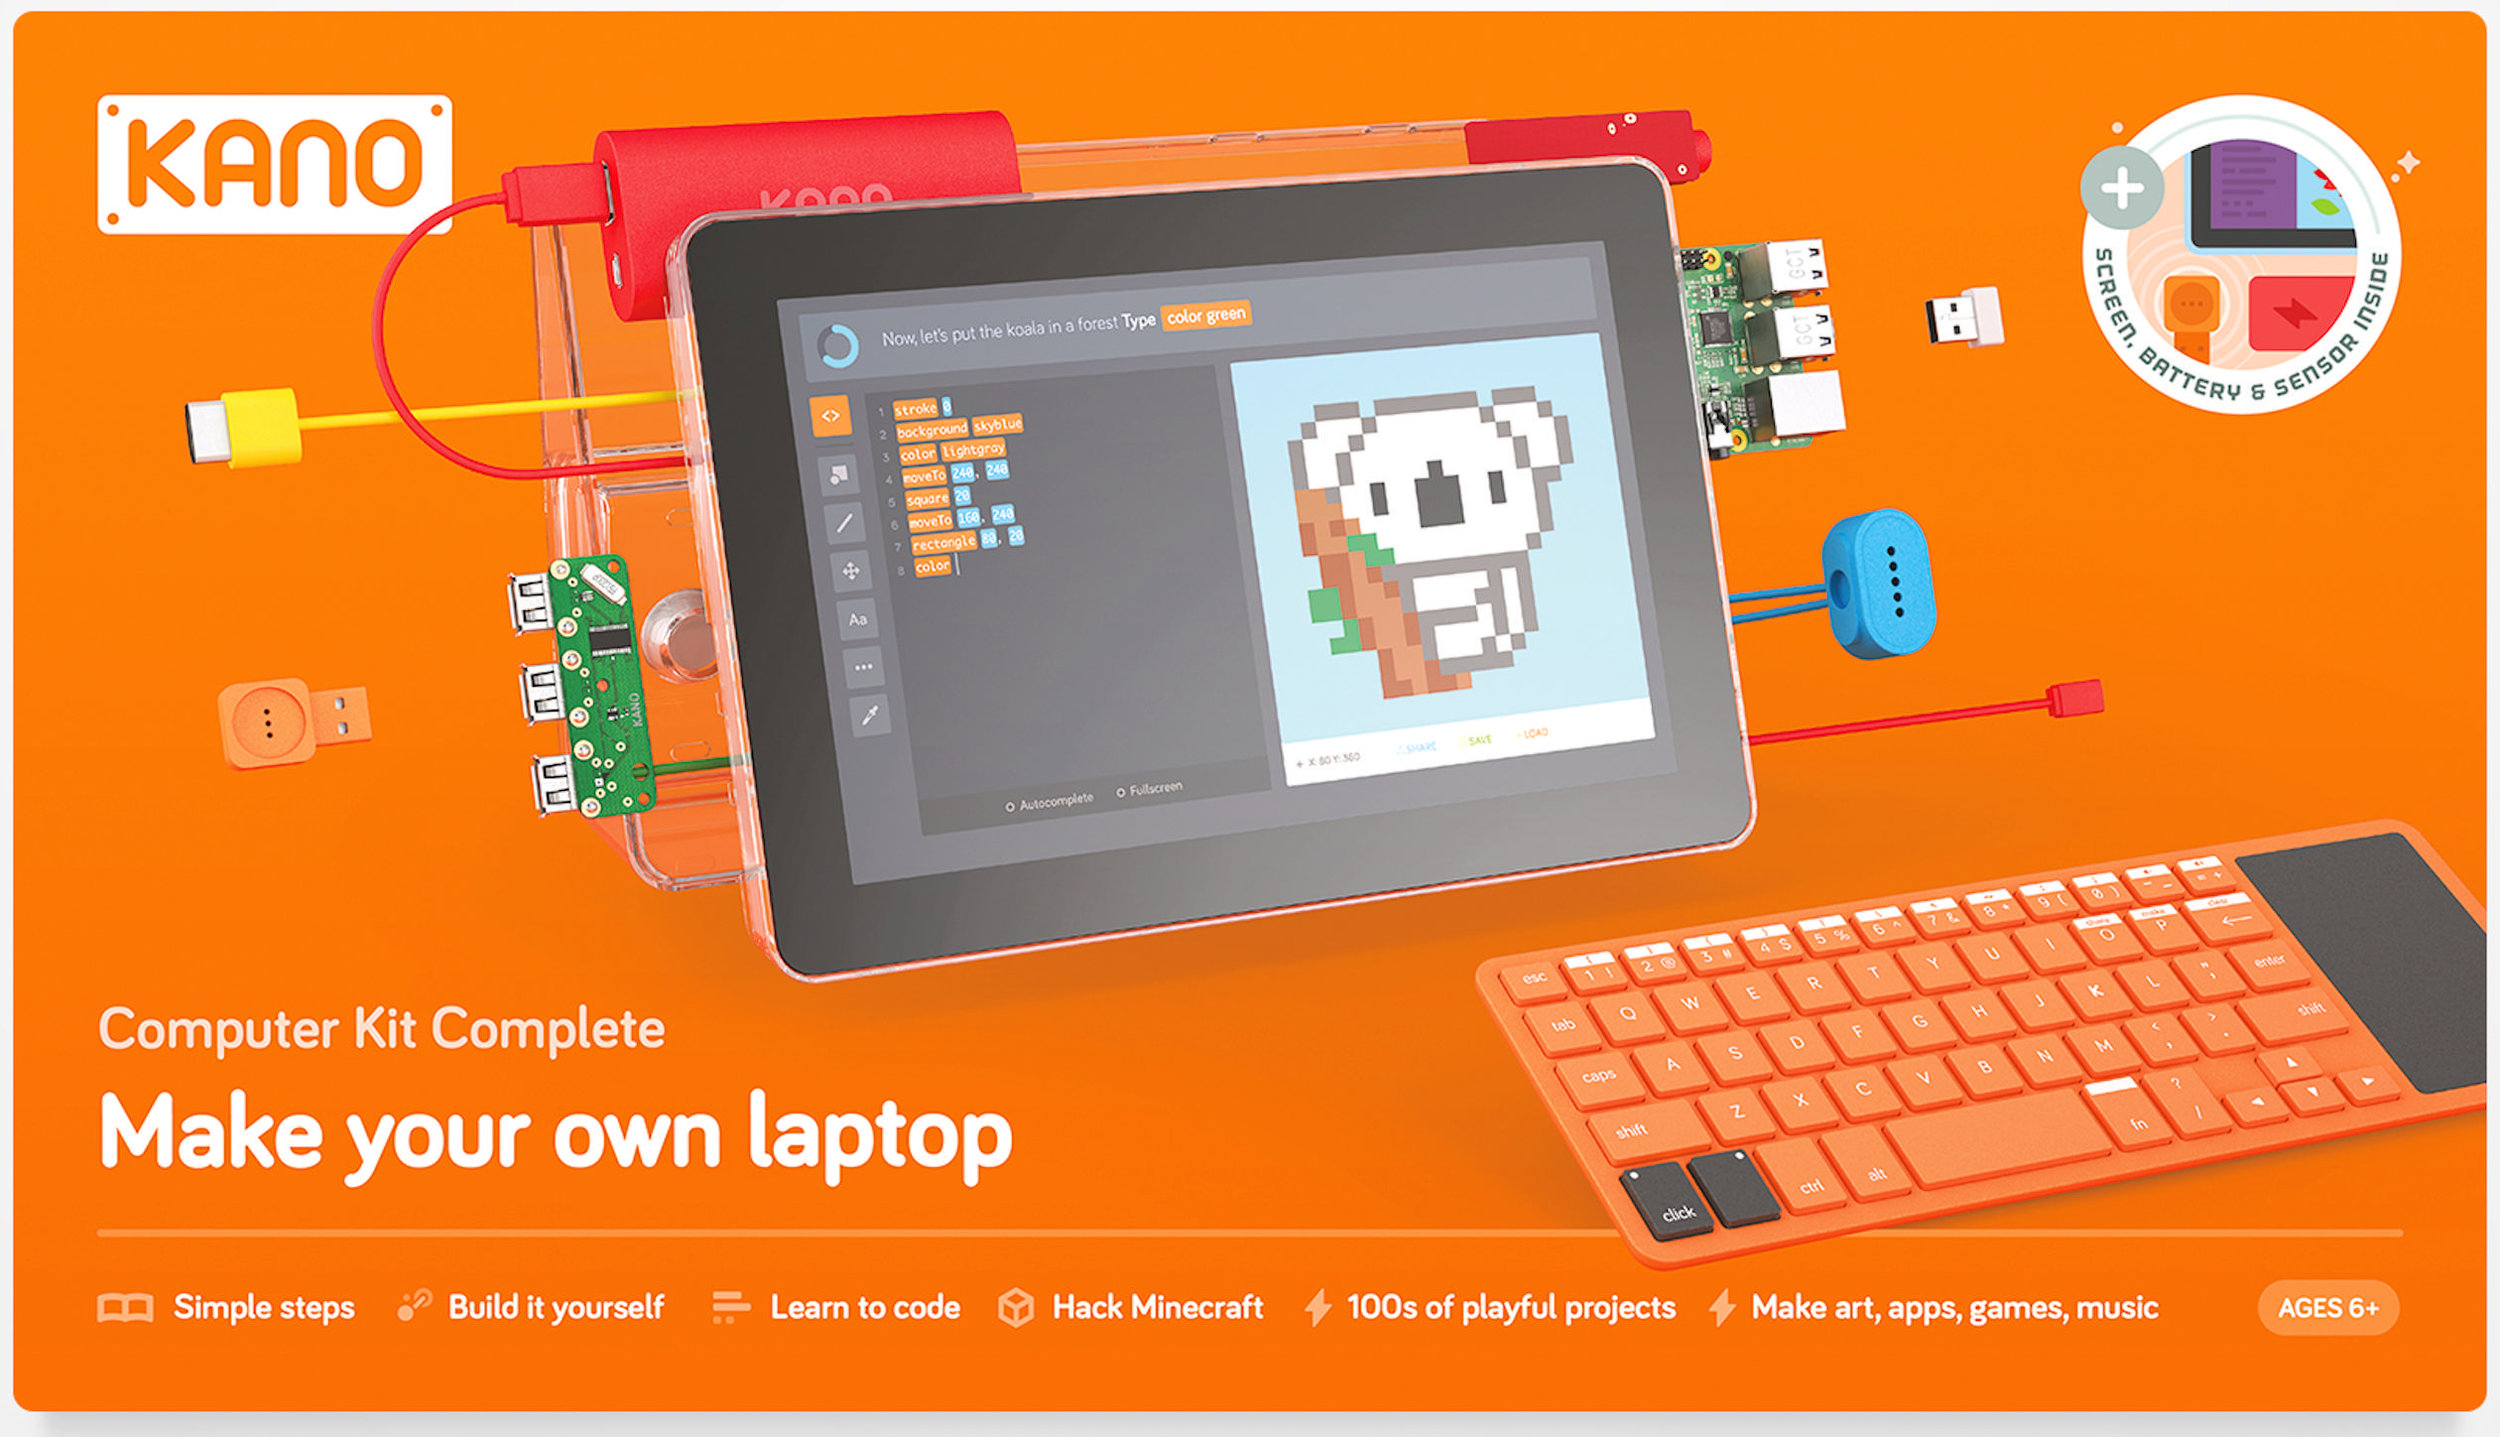 kano-computer-kit-complete-make-laptop.-learn-to-code--EA3B8CF7.pt01.zoom.jpg